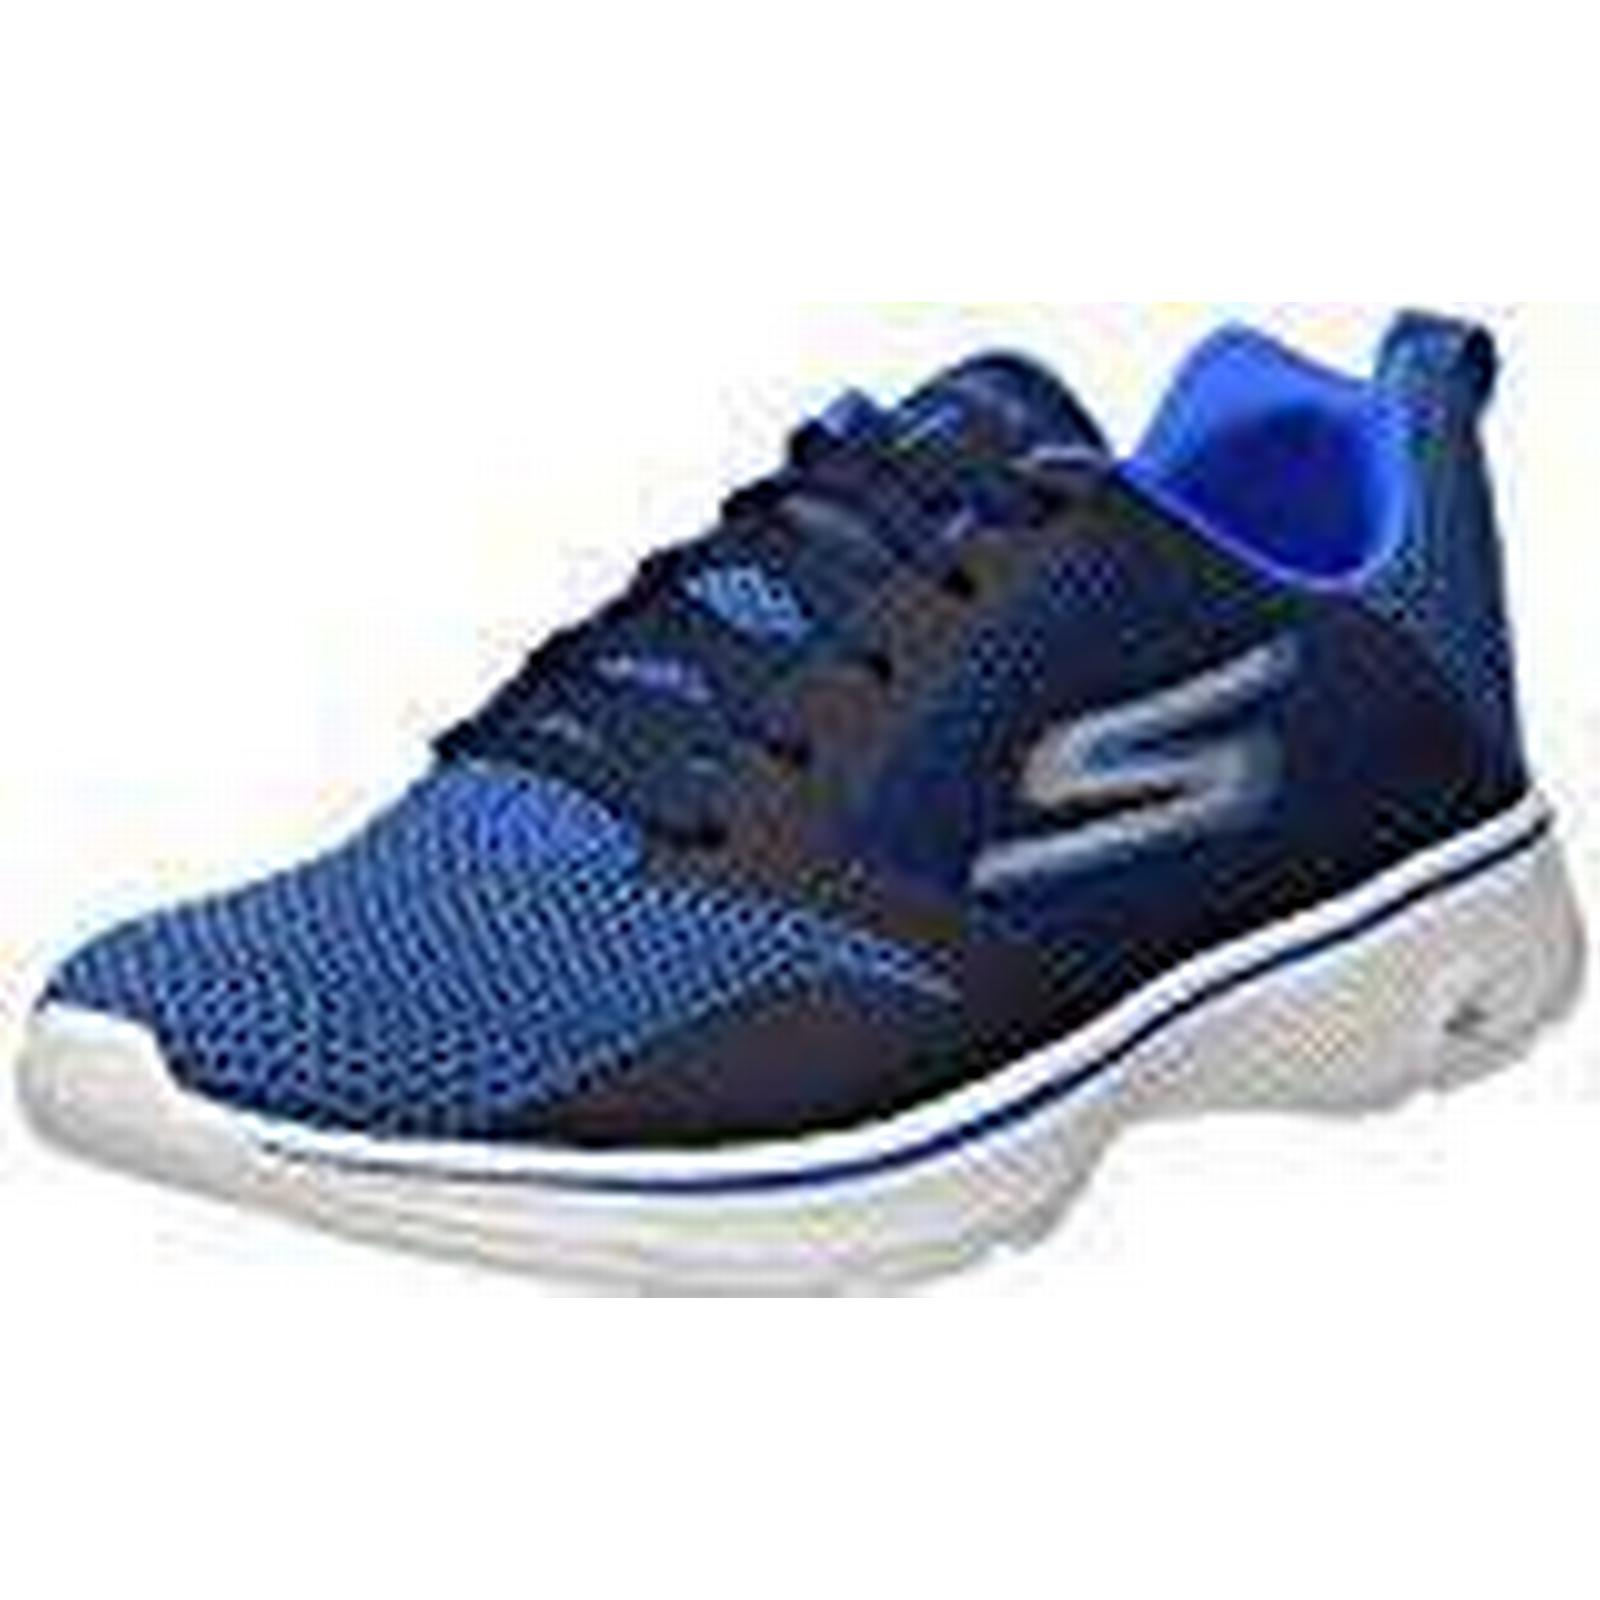 Skechers (Blue), Men's 54680 Trainers, (Blue), Skechers 7.5 UK 42 EU 365317